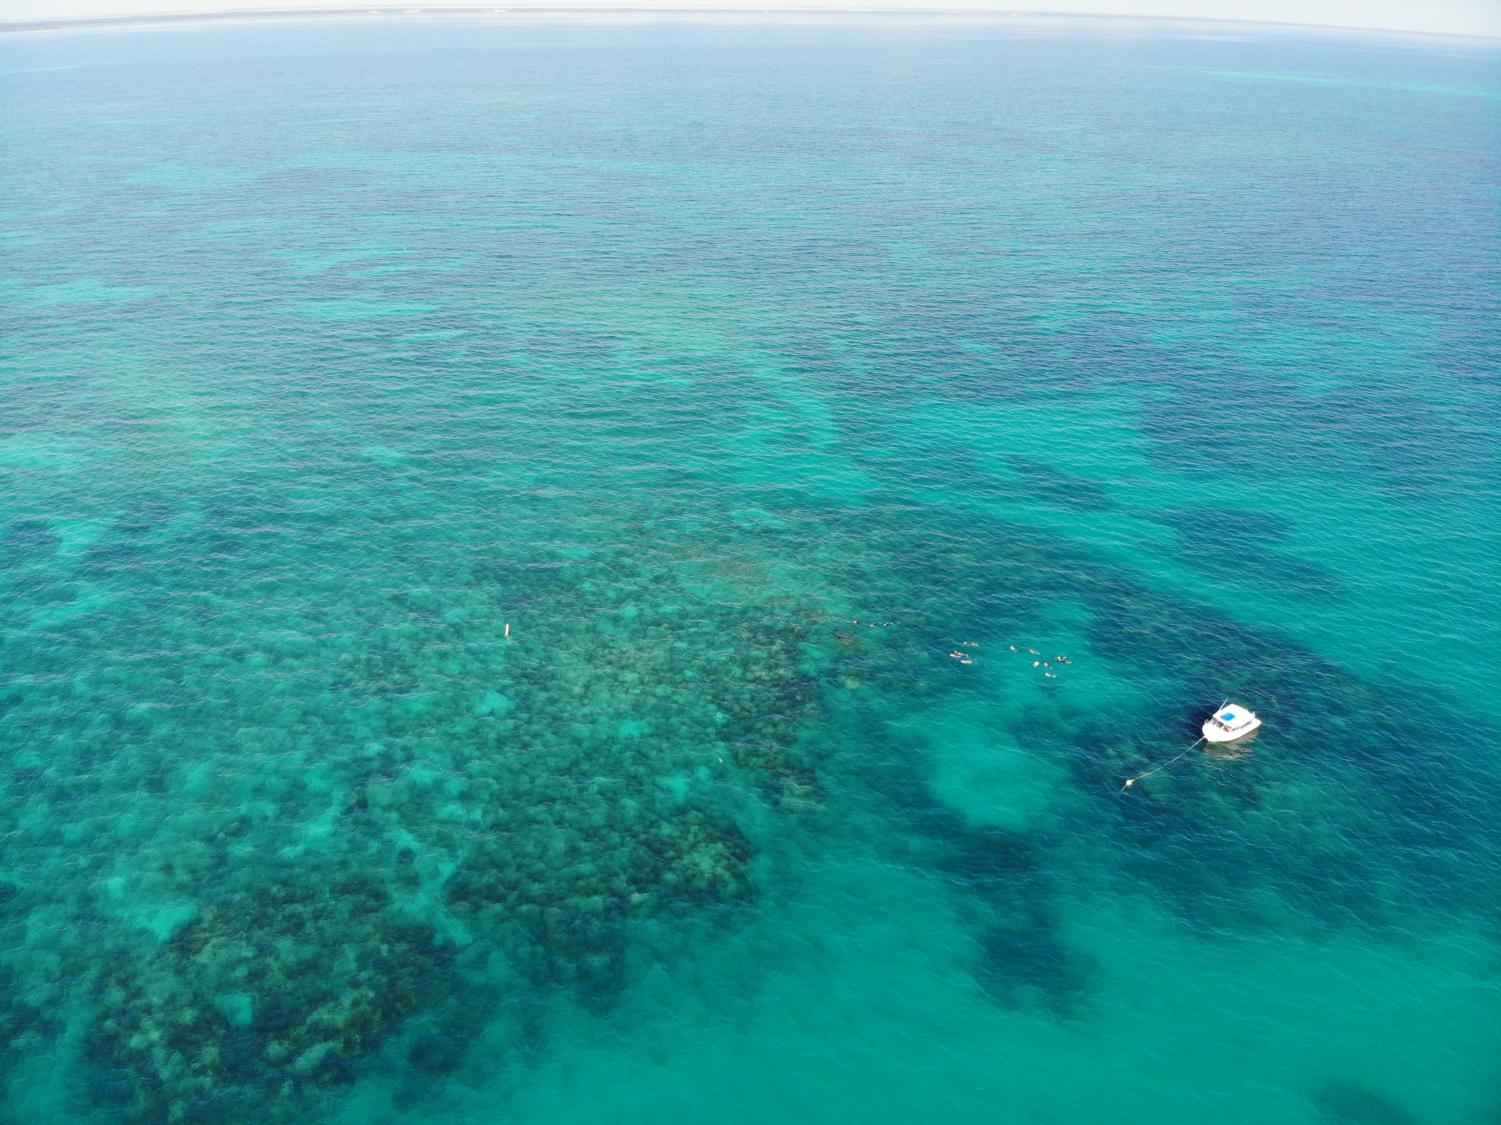 Drone footage of Island Ventures boat anchored on the outskirts on Grecian Rock reef.